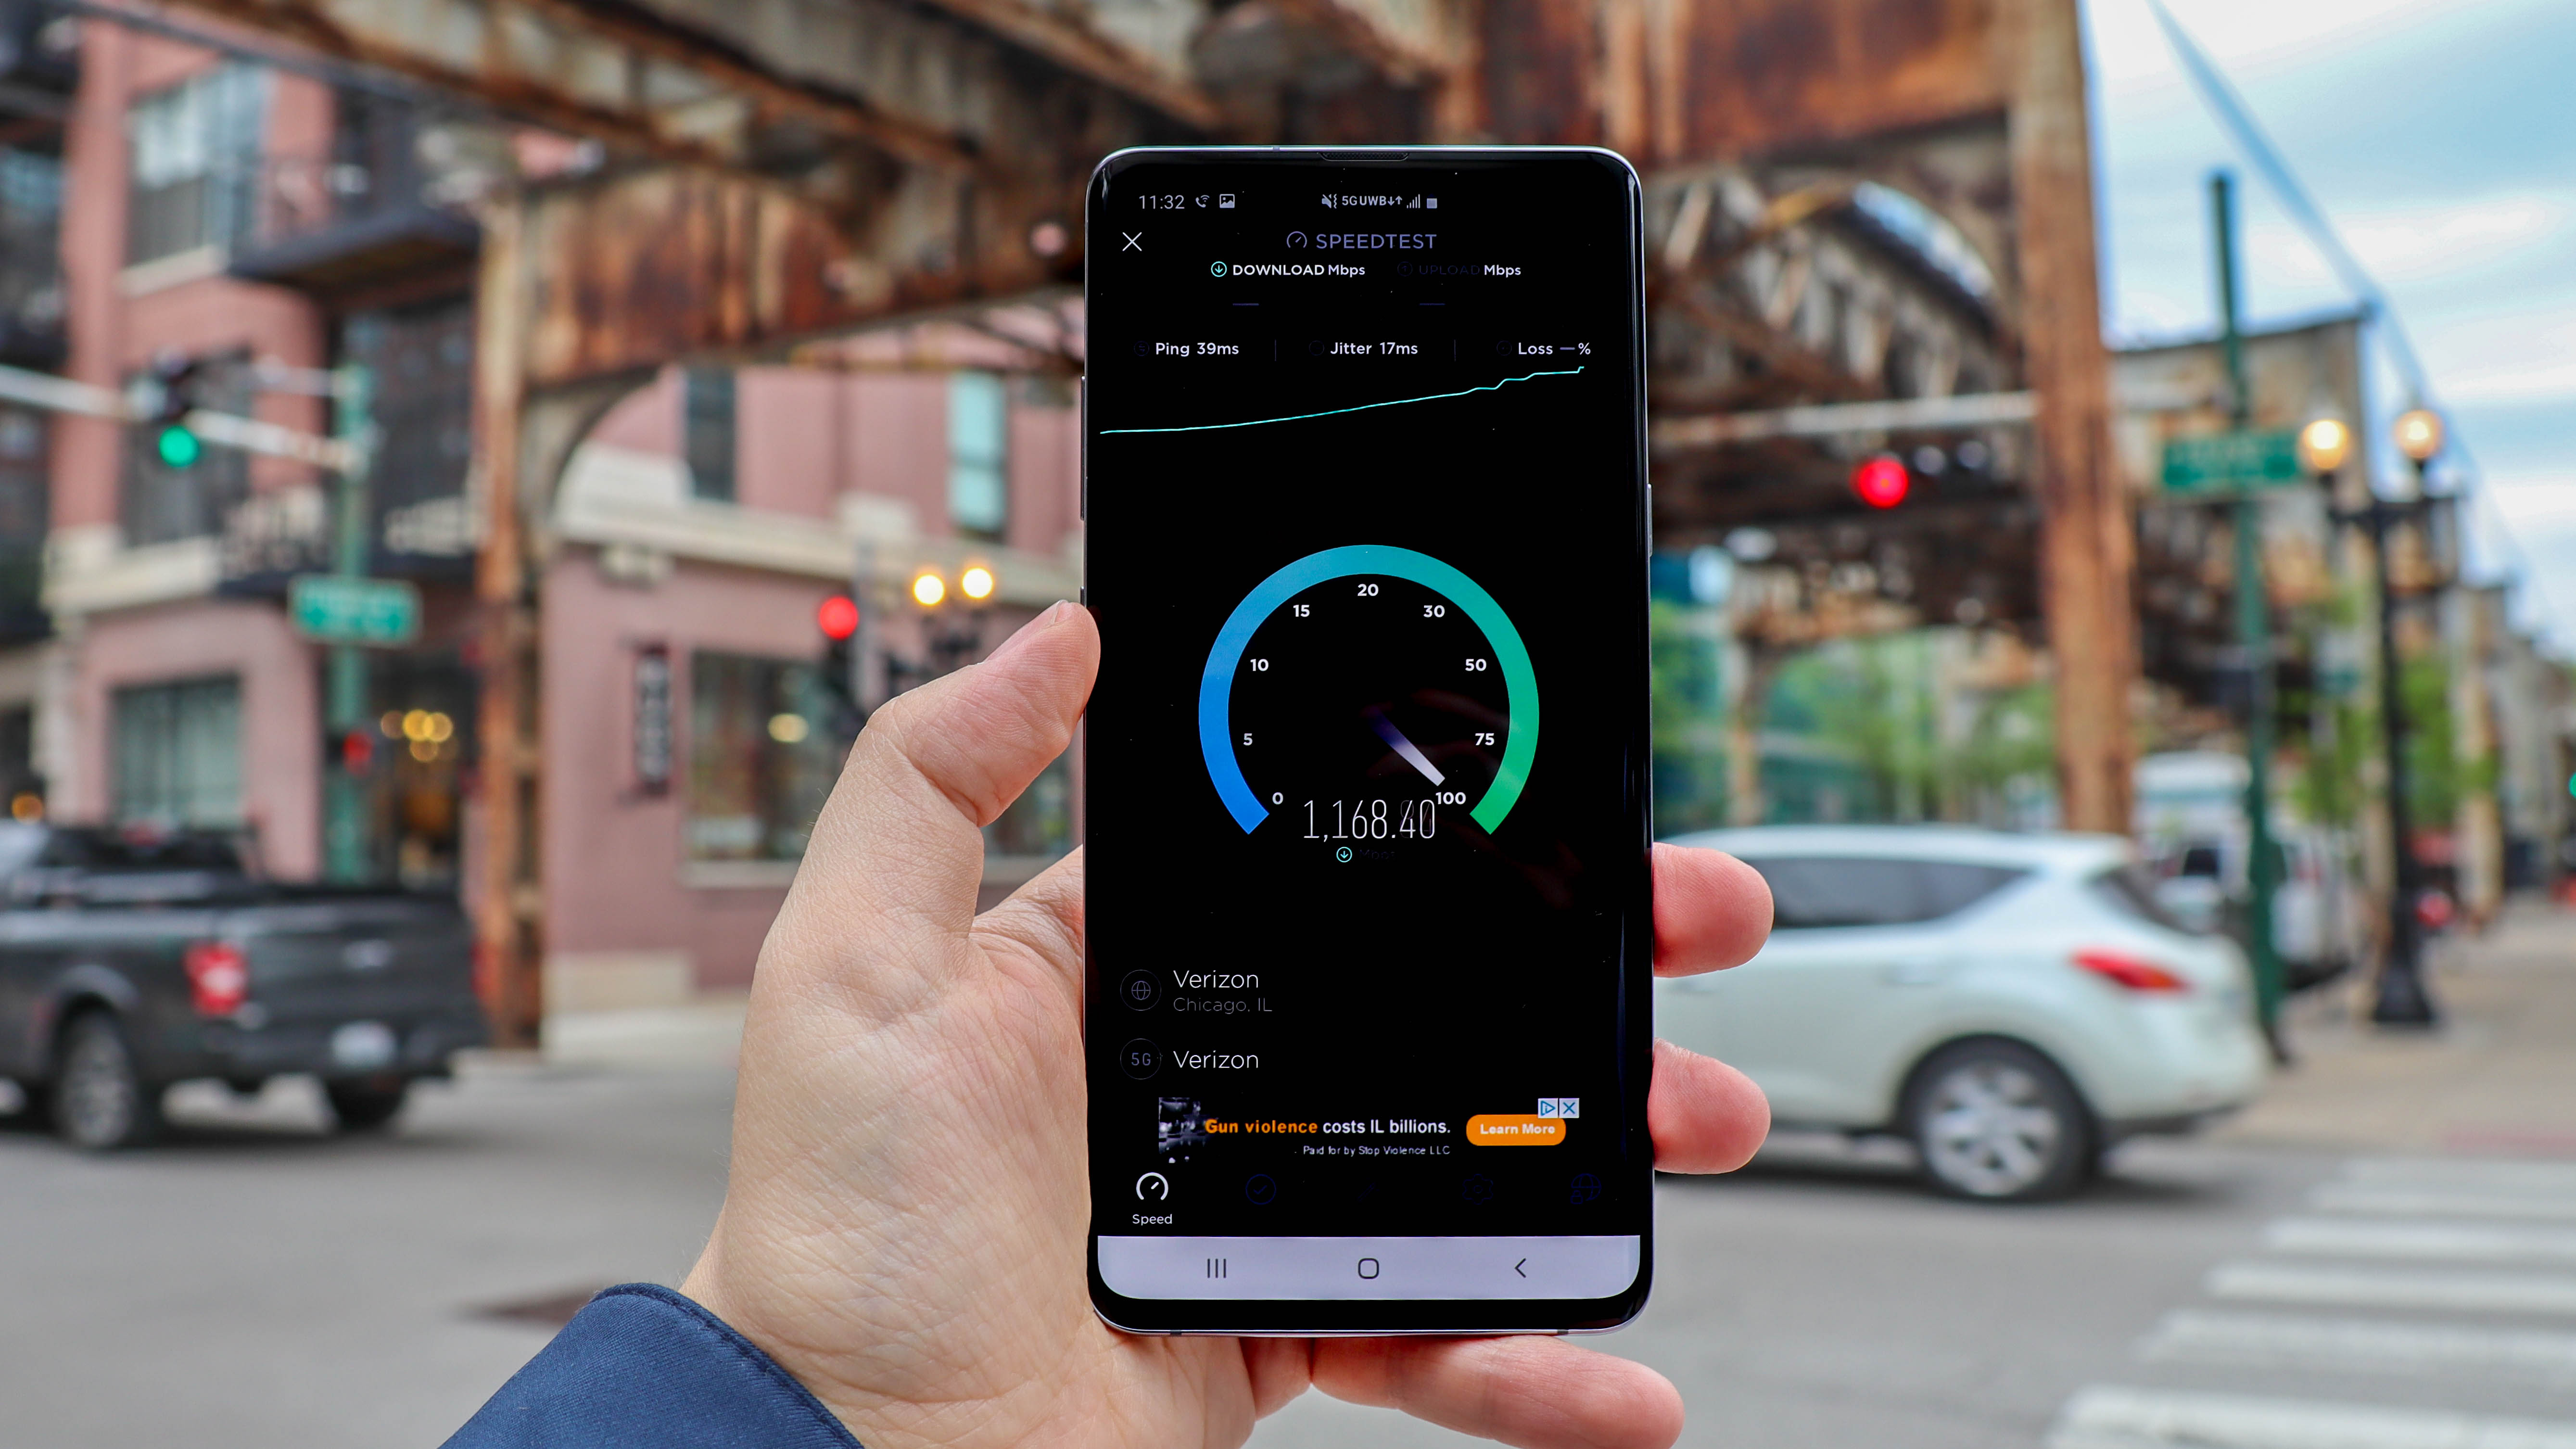 5G speed test: 1.4Gbps in Chicago, but only if you do 'the 5G shuffle'